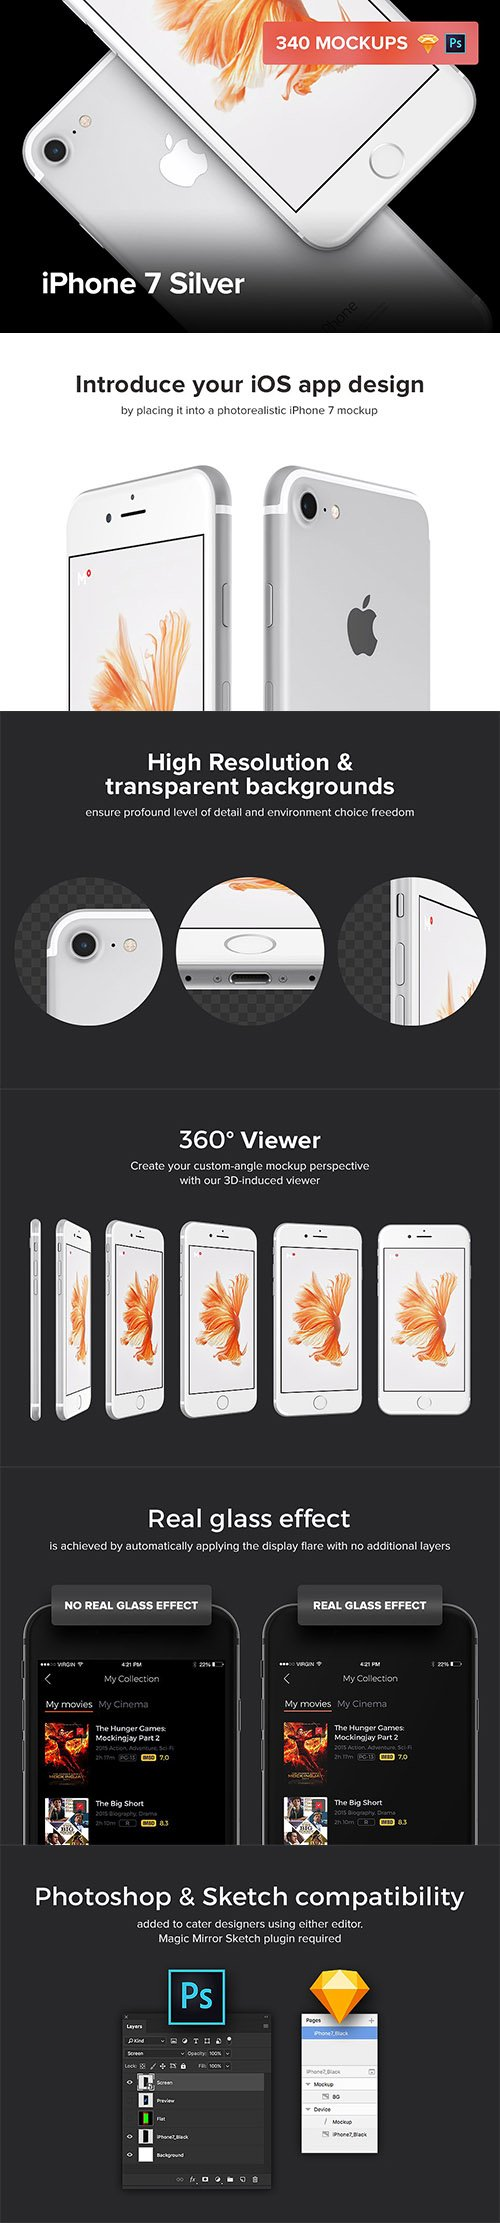 340 iPhone 7 Silver mockups - CM 1300406